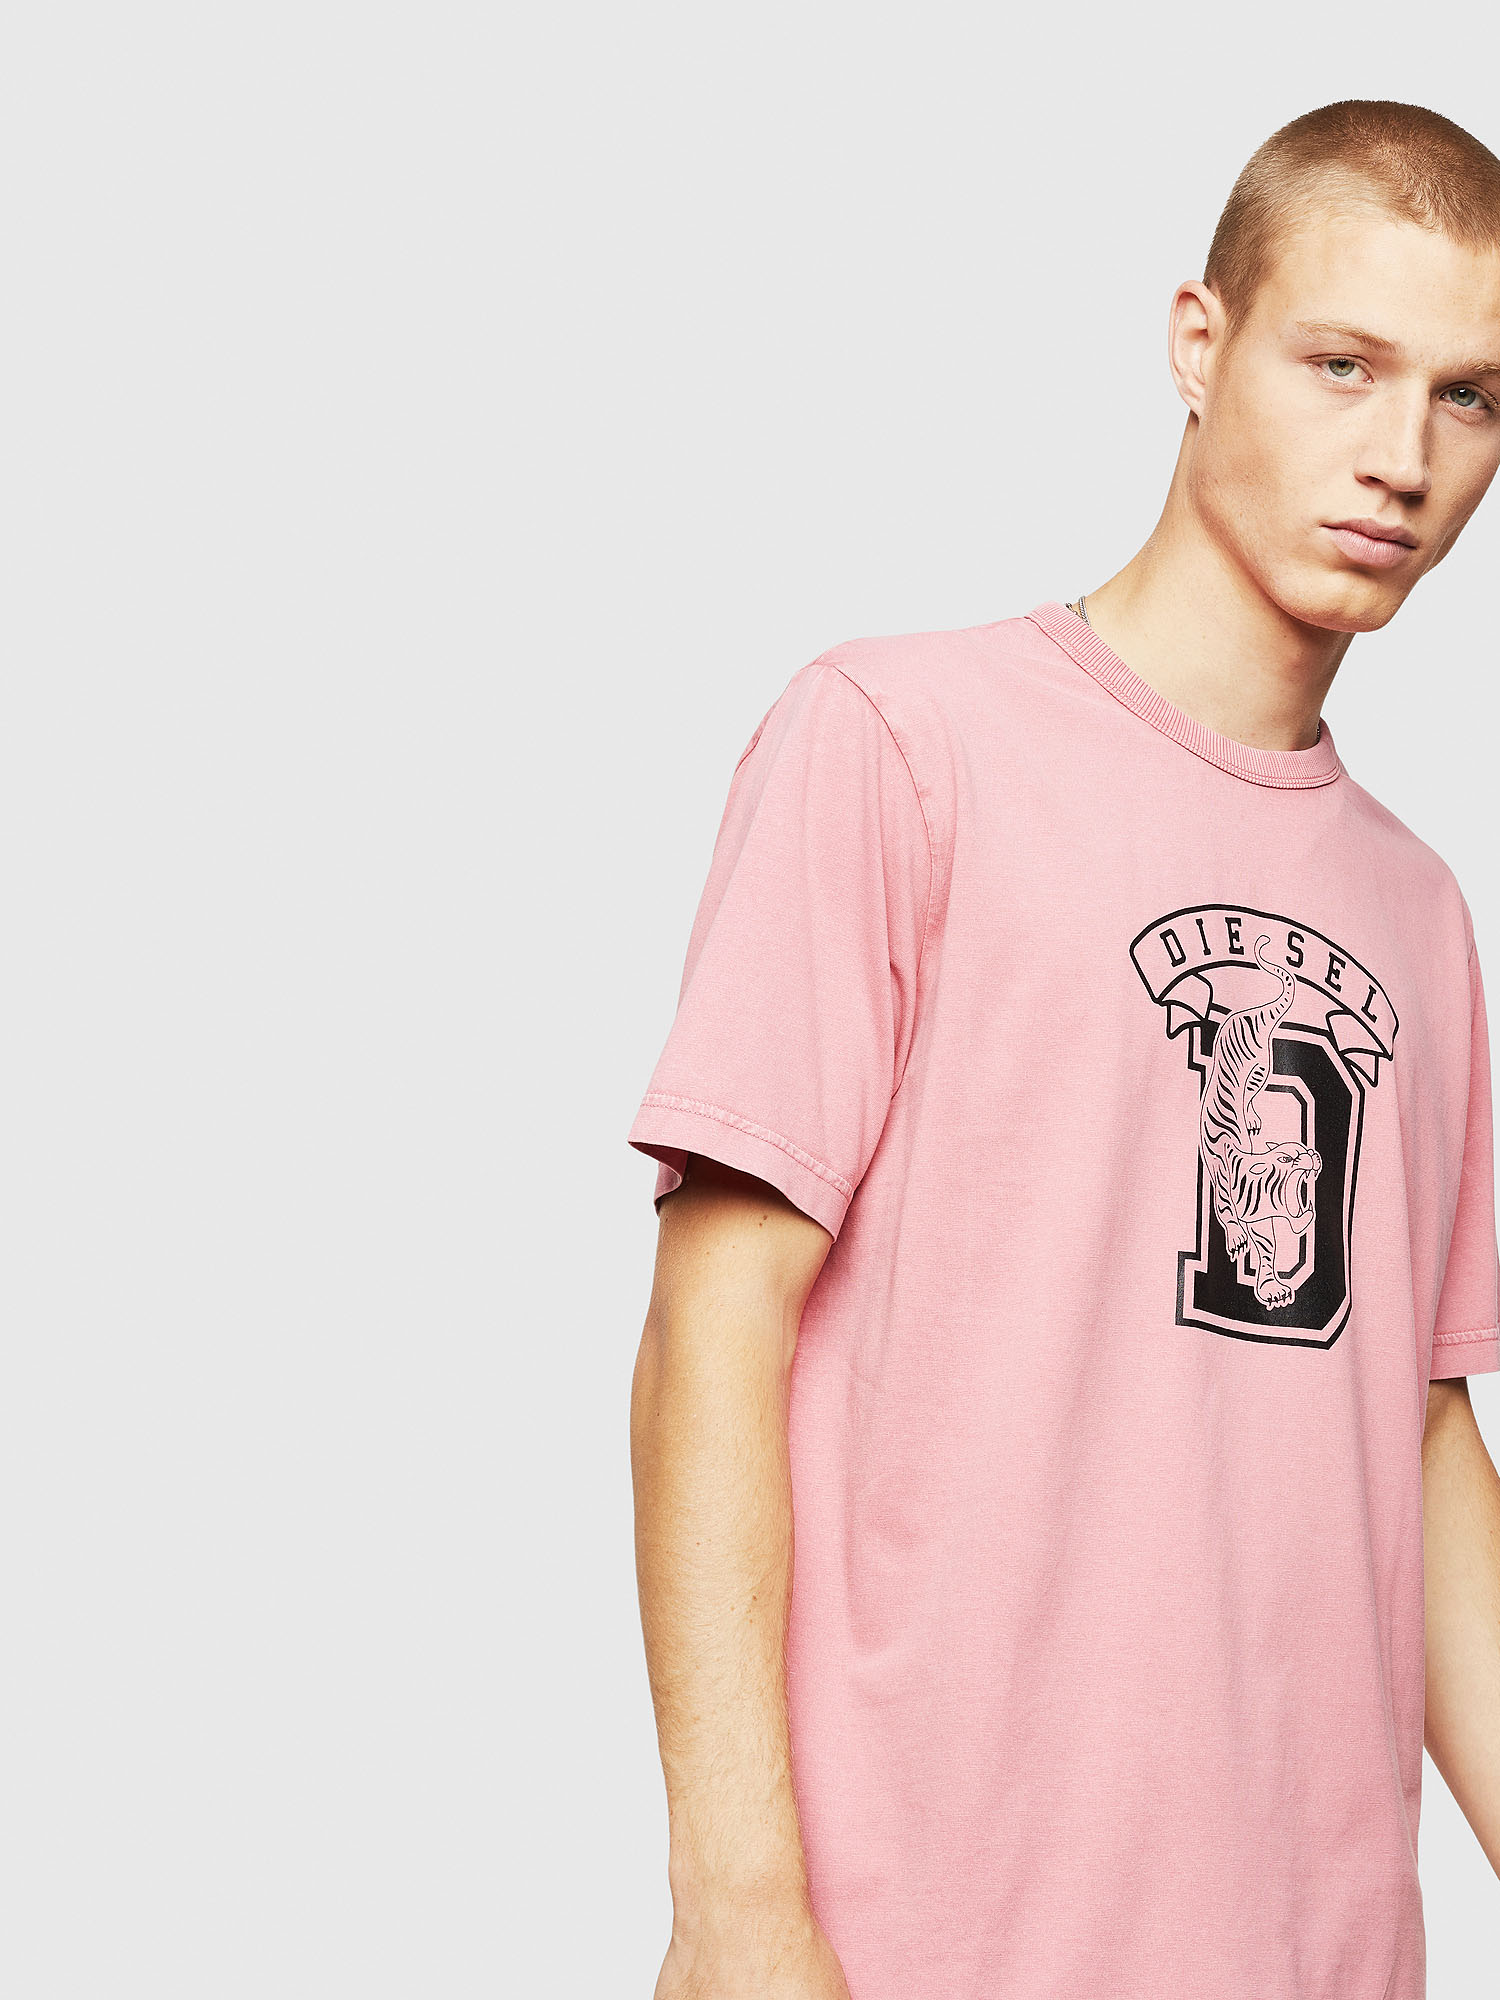 Diesel - T-JUST-B2,  - T-Shirts - Image 4